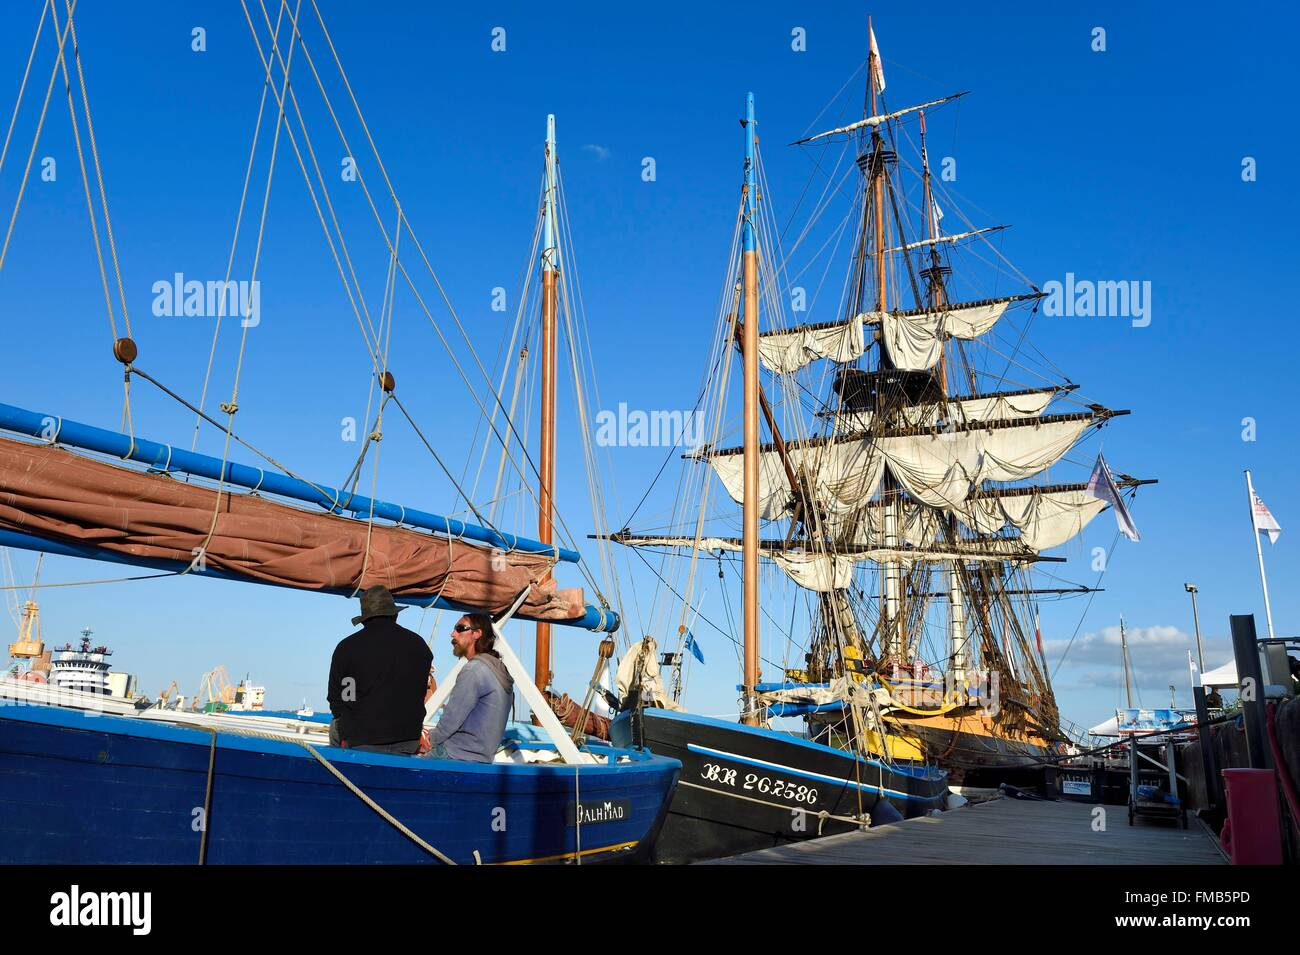 France, Finistere, Brest port, L'Hermione frigate, replica of the three masts which brought the marquis de Lafayette - Stock Image